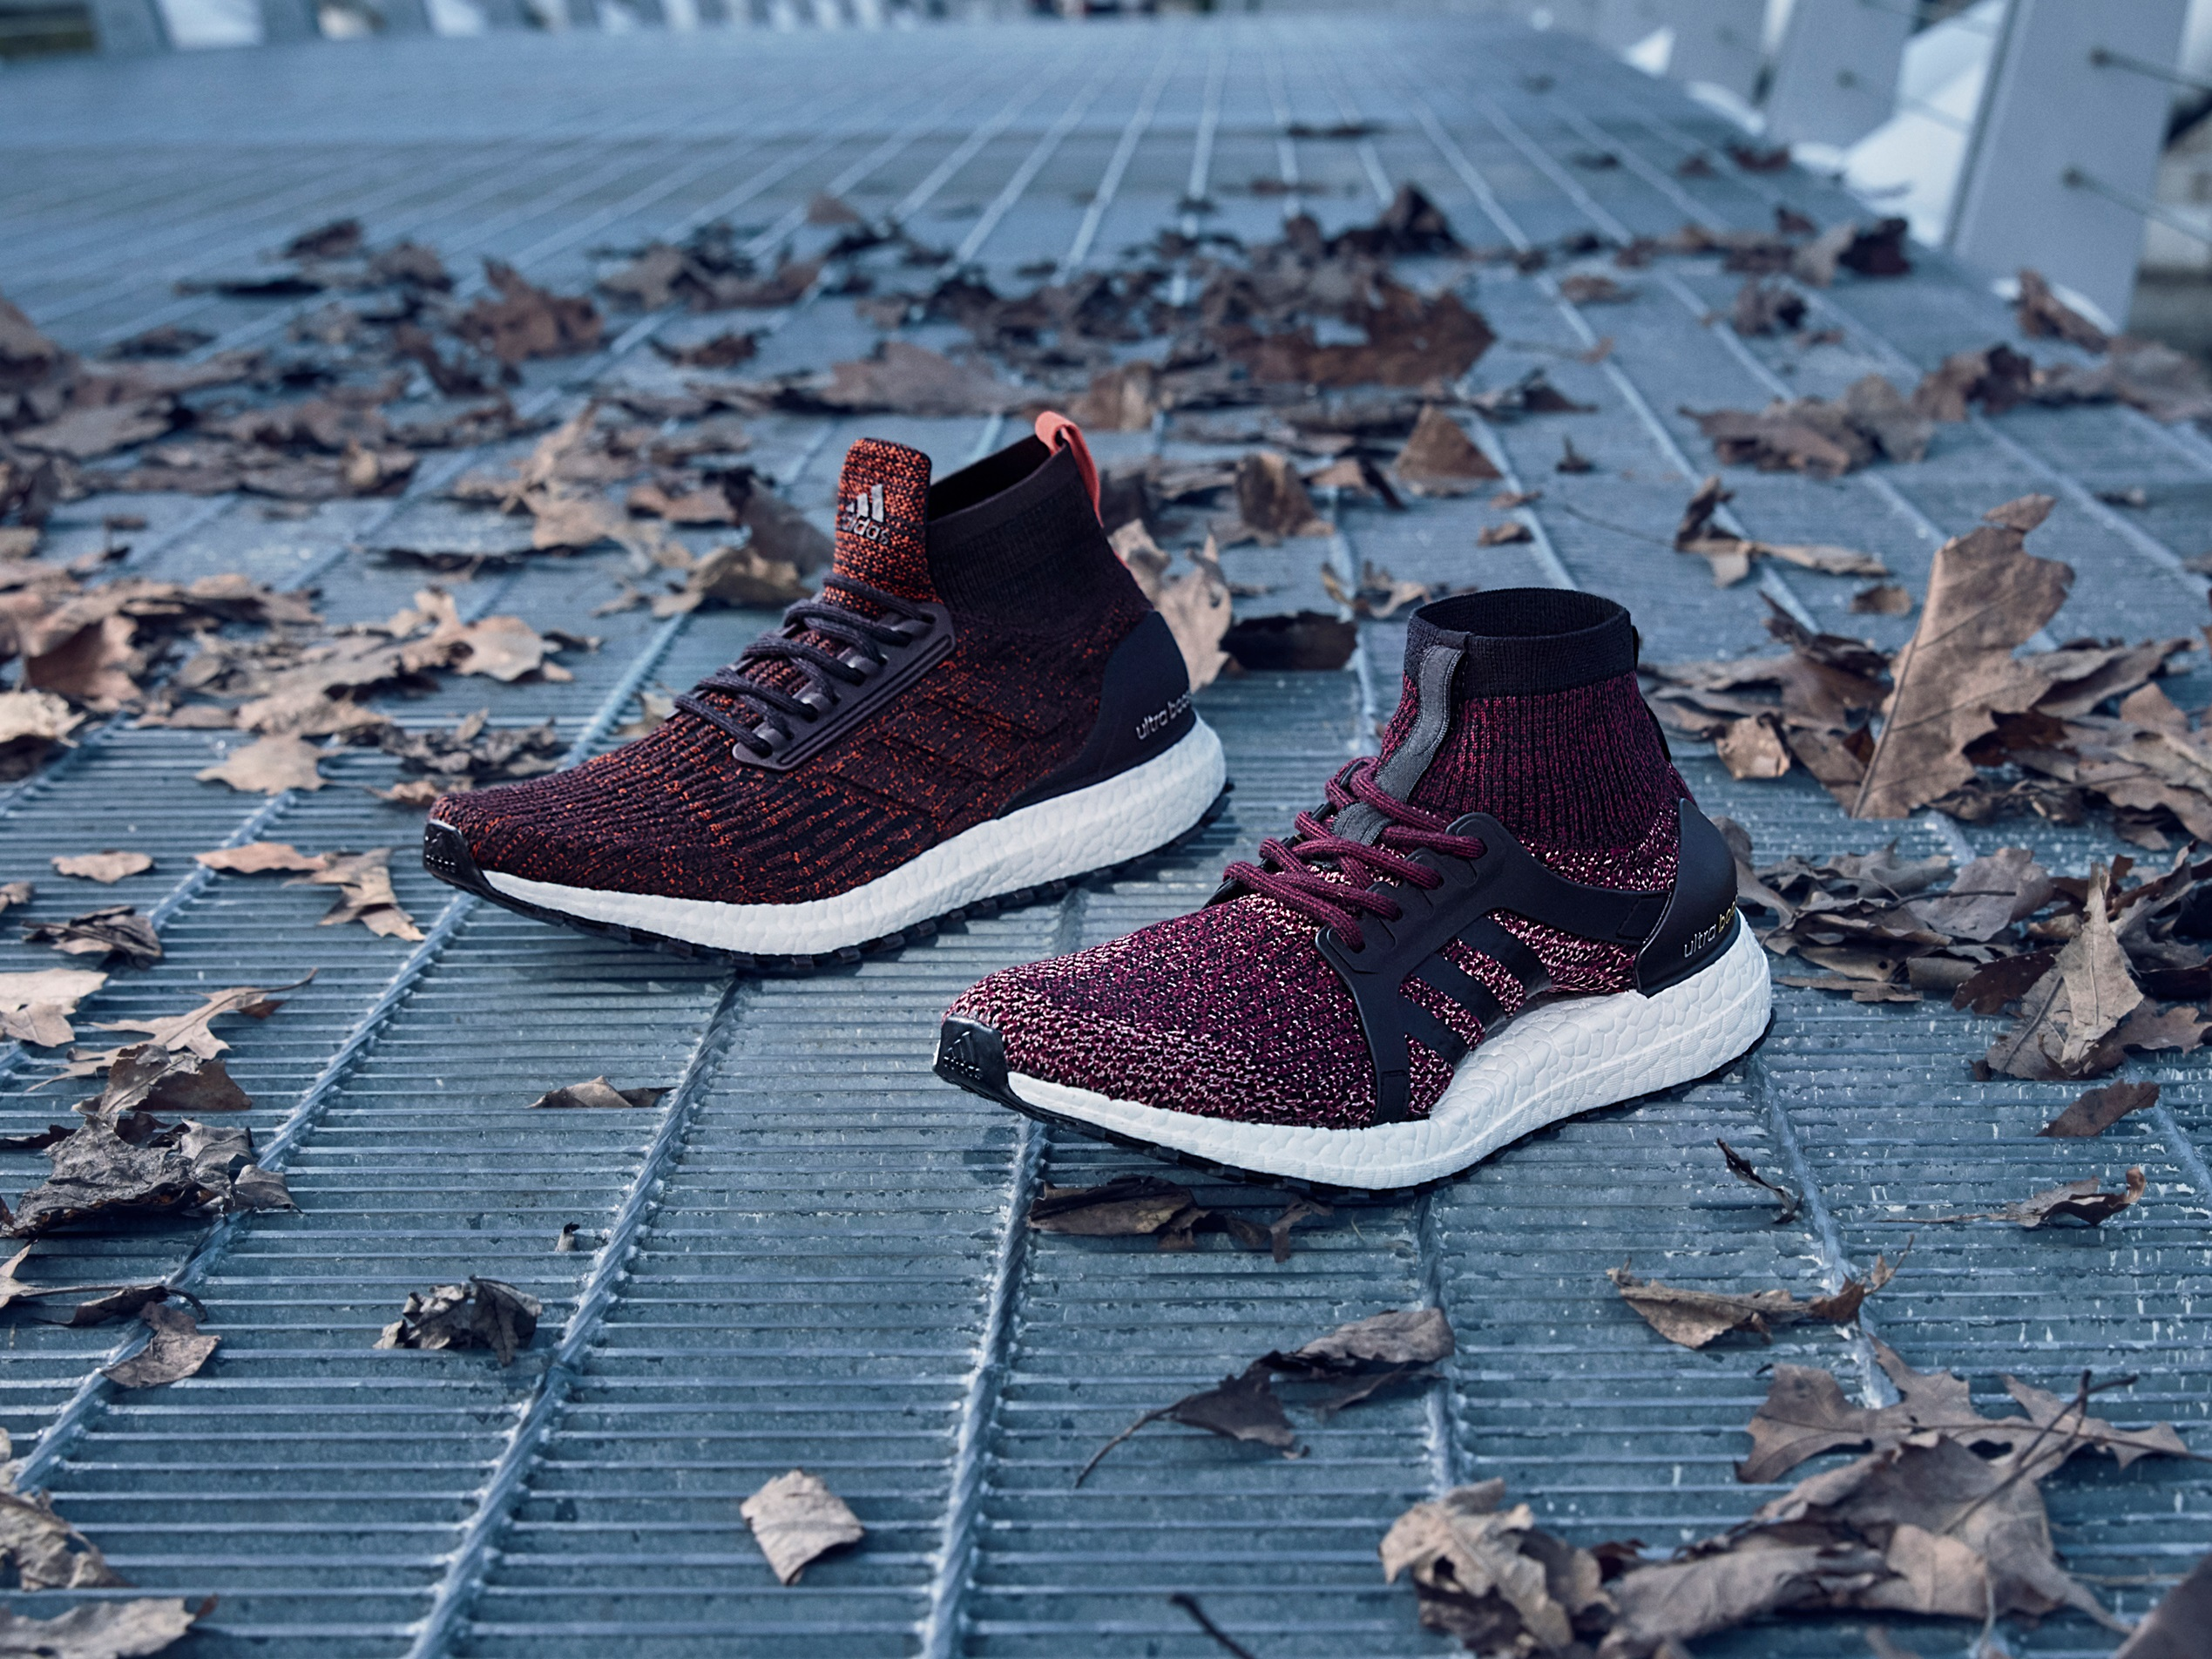 PERFECT FOR AUTUMN THE ADIDAS ULTRA BOOST ALL TERRAIN